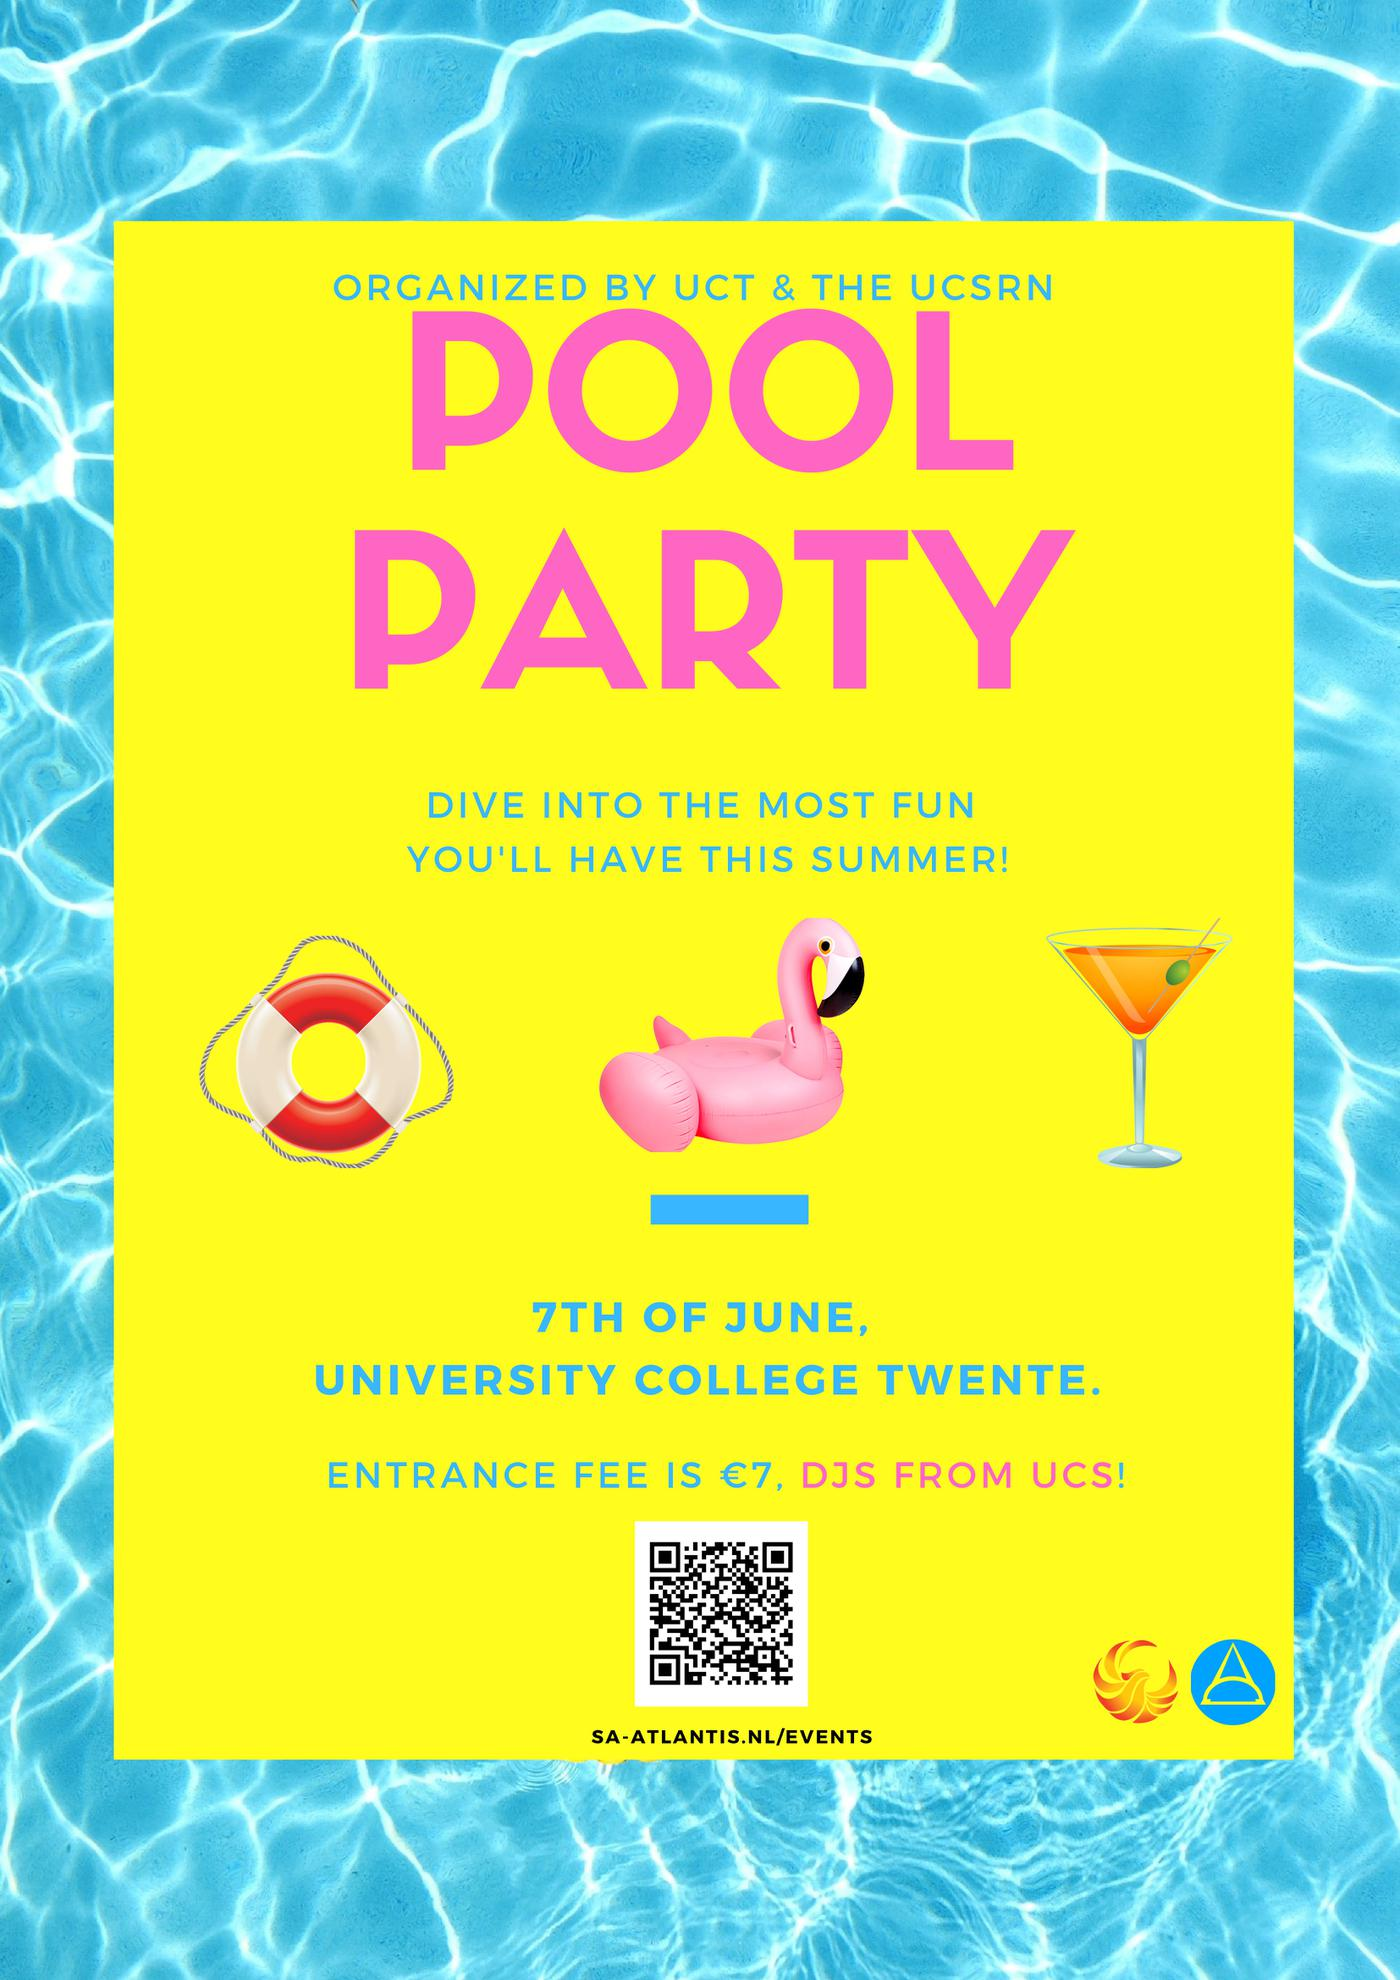 UCSRN Pool Party @ UCT